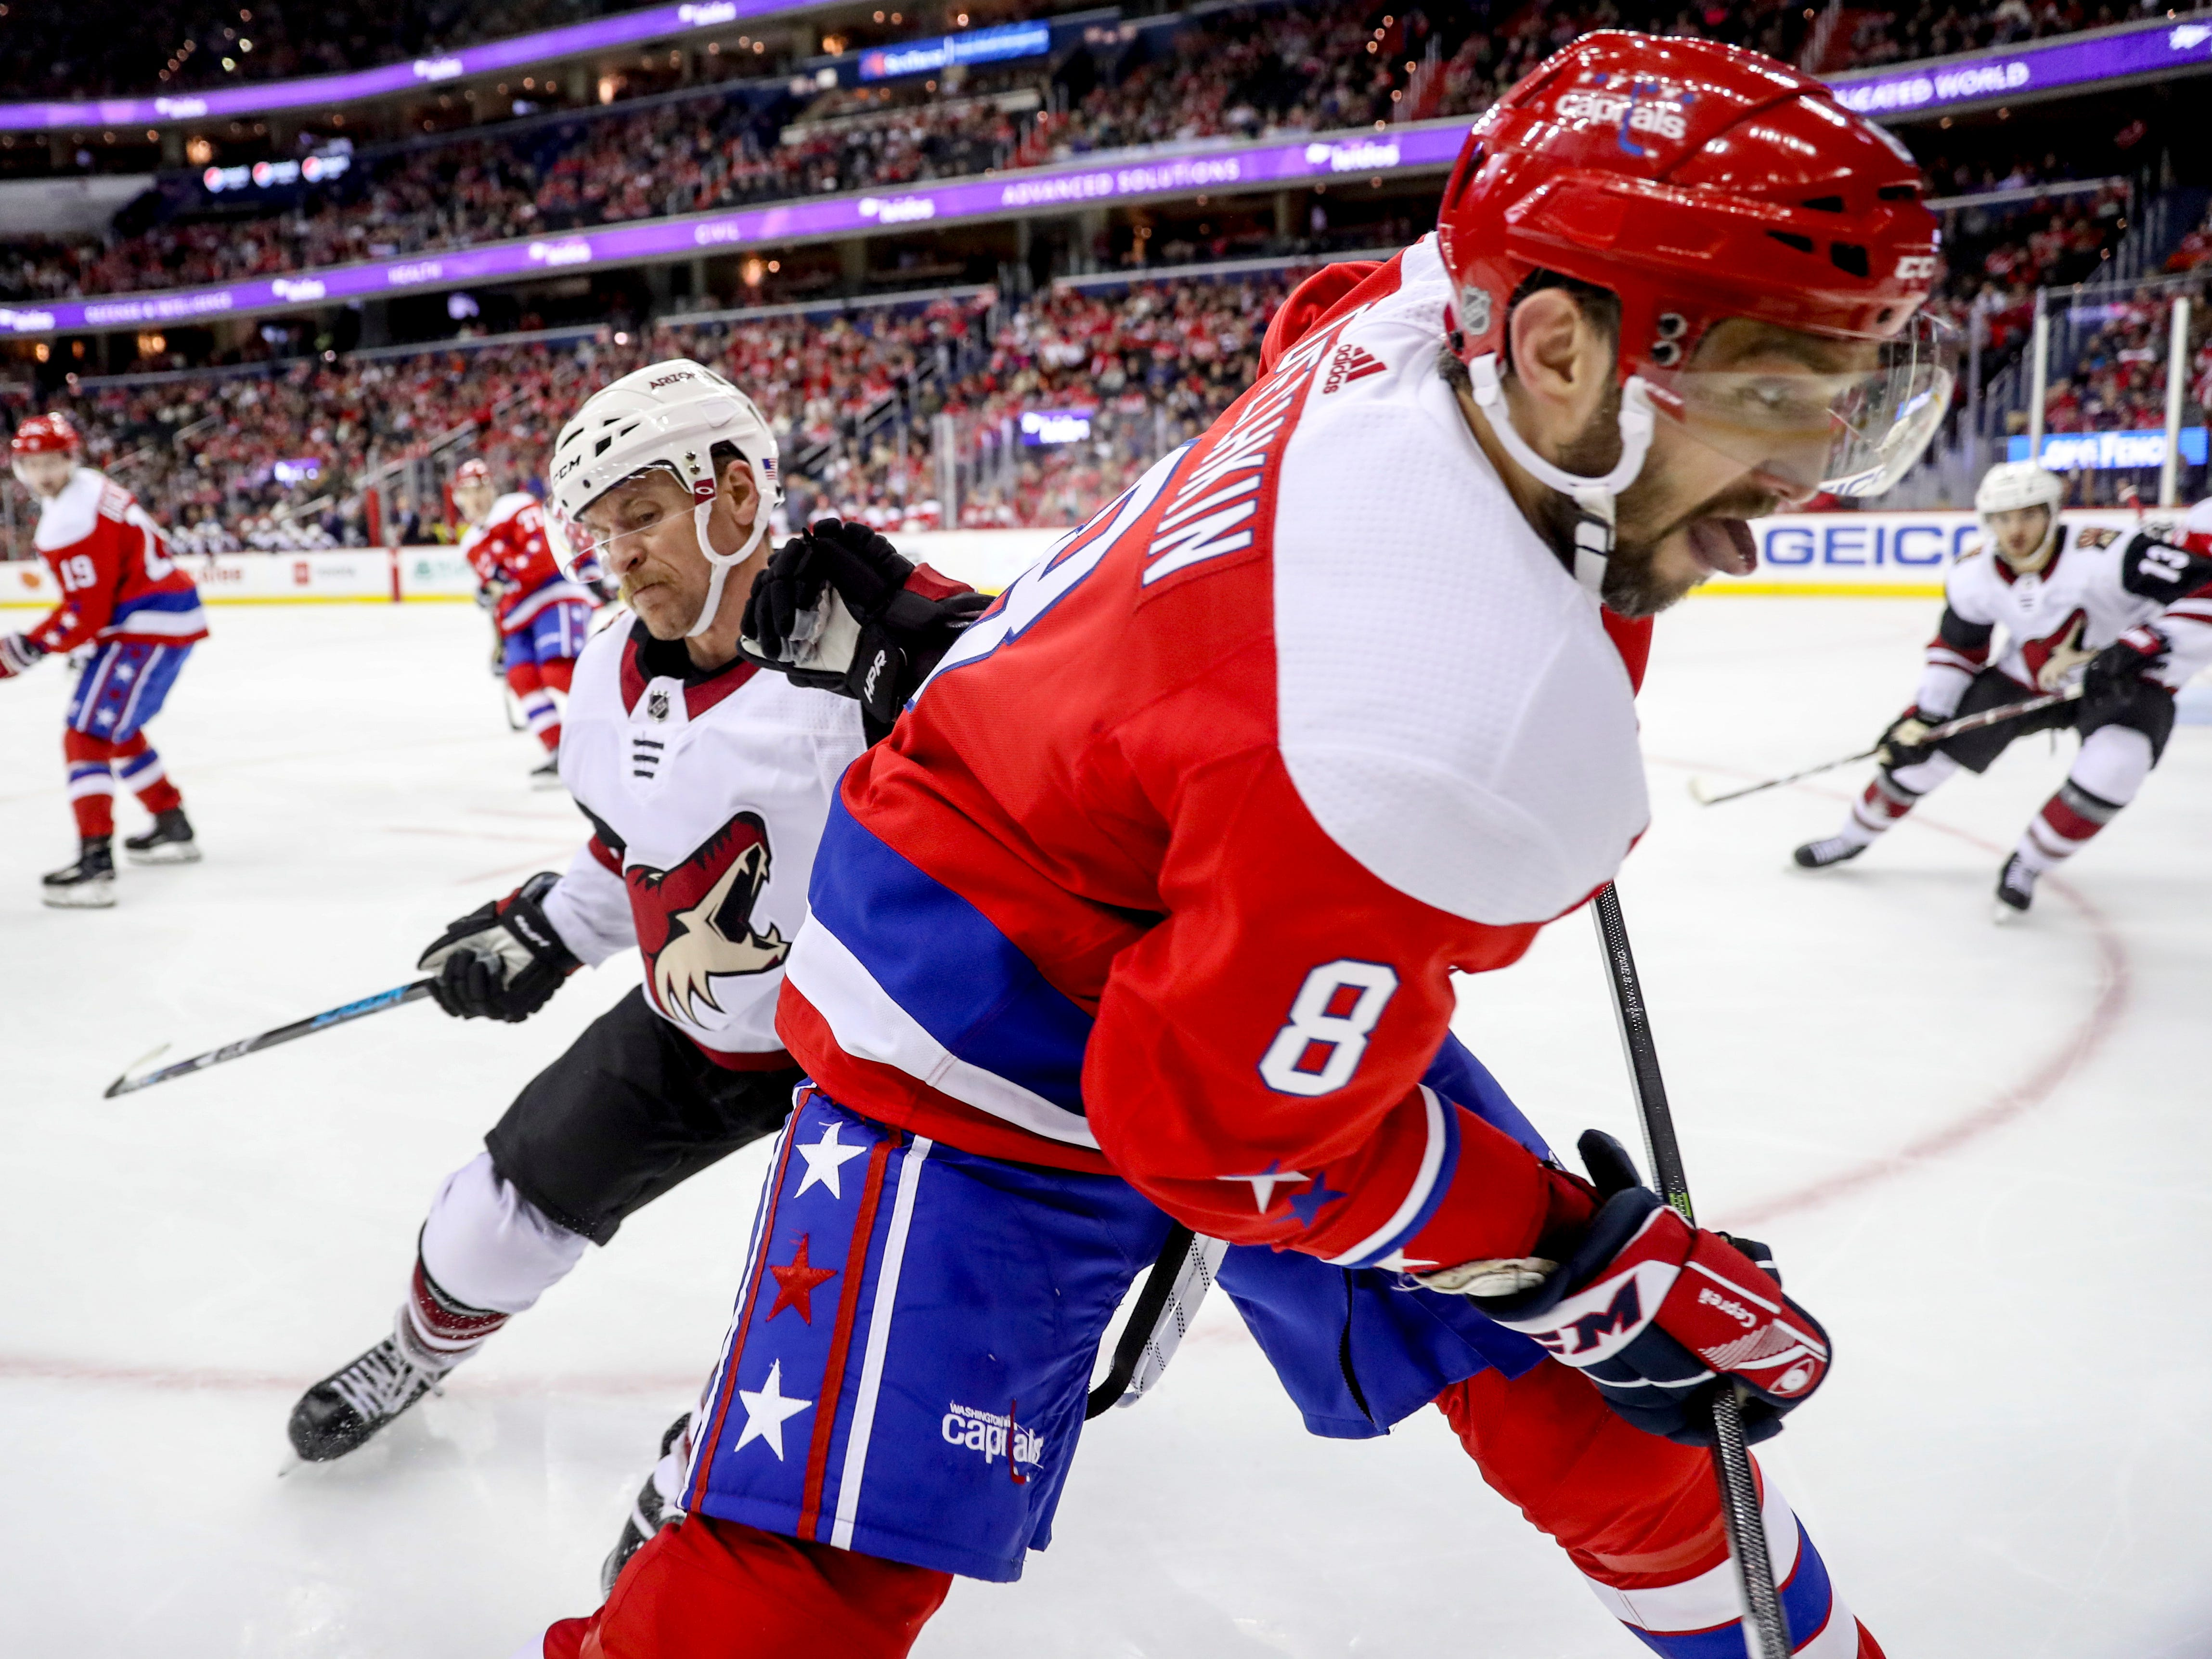 Arizona Coyotes right wing Michael Grabner, back, and Washington Capitals left wing Alex Ovechkin (8) battle for the puck in the third period of an NHL hockey game, Sunday, Nov. 11, 2018, in Washington. (AP Photo/Andrew Harnik)